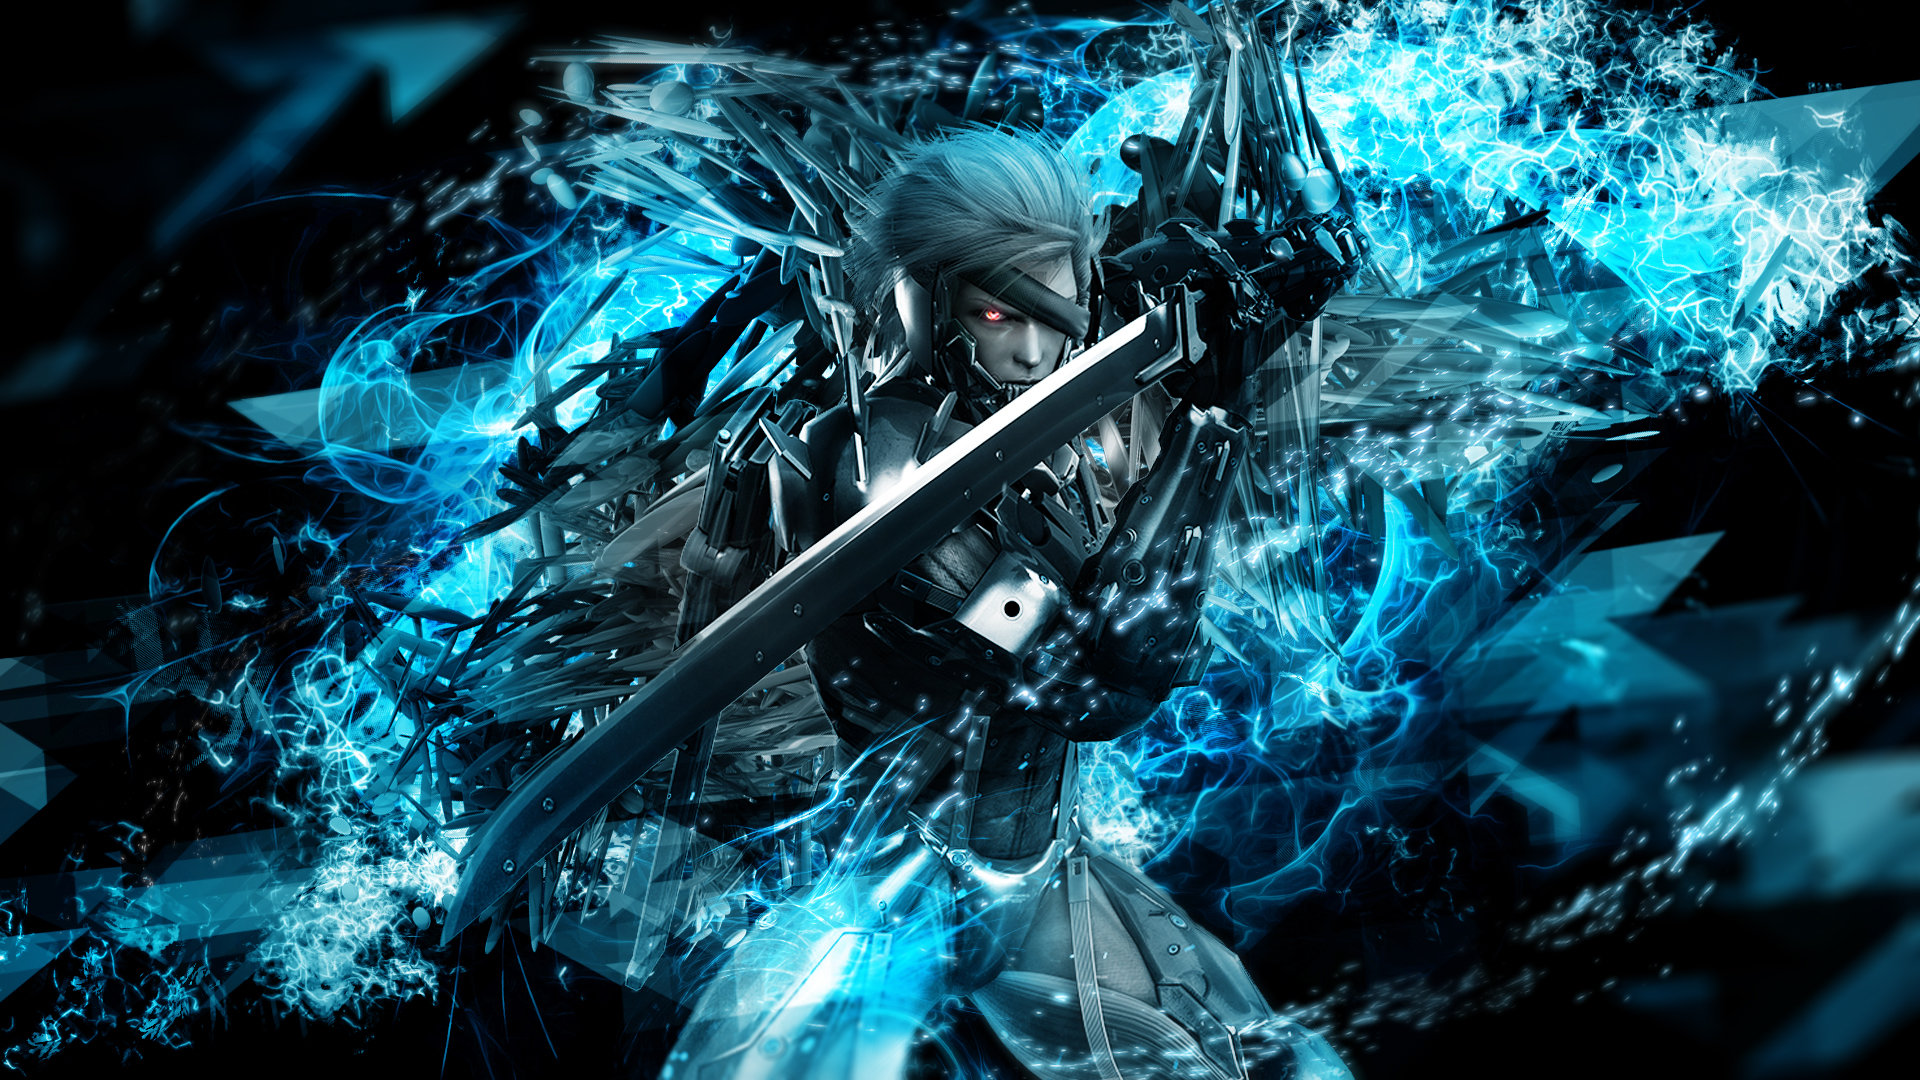 wallpaper #4 wallpaper from metal gear rising: revengeance